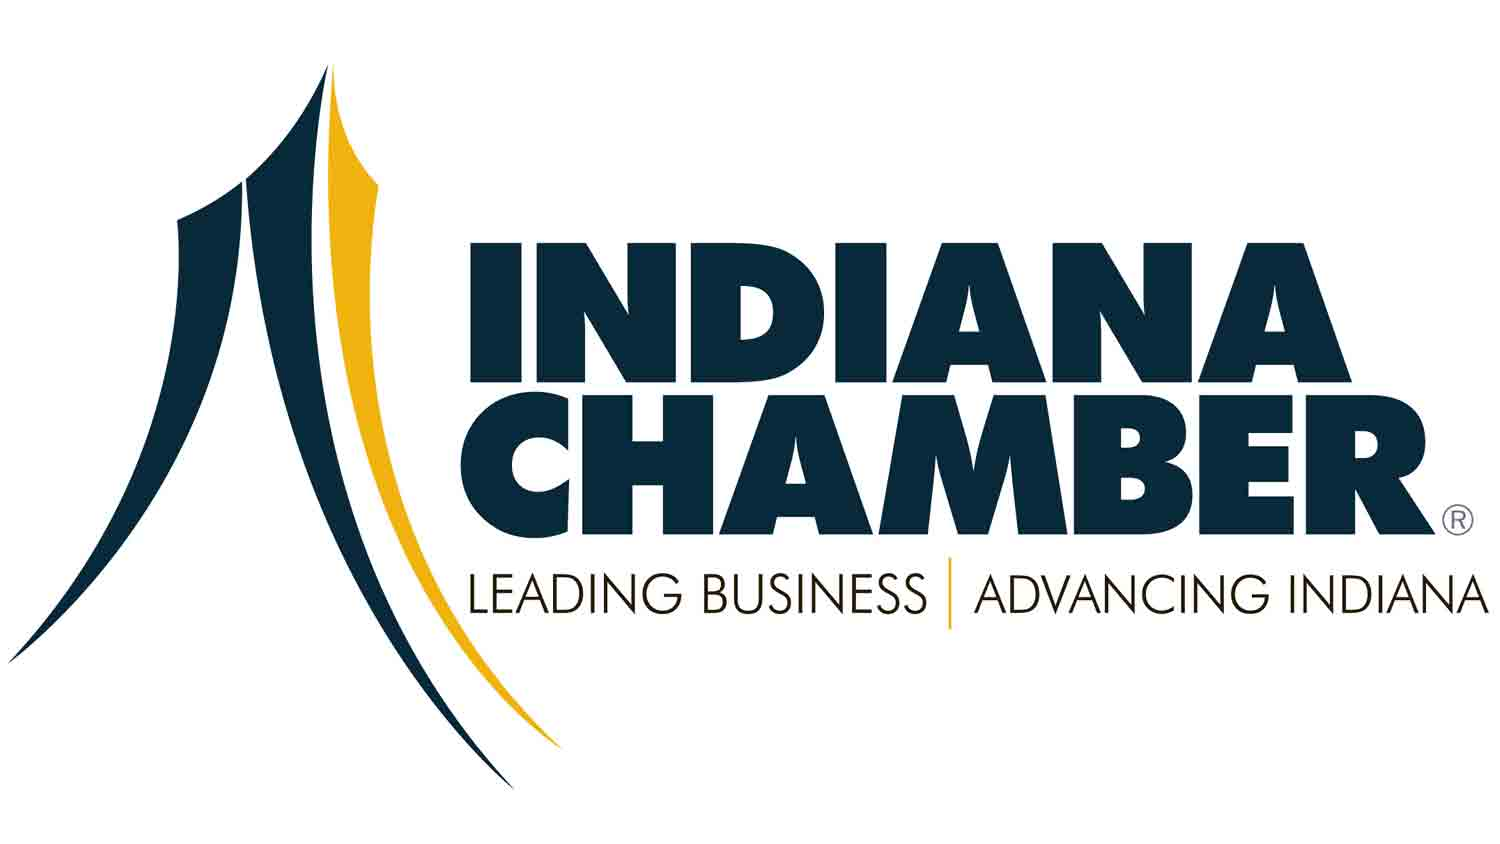 Indiana Chamber of Commerce 2